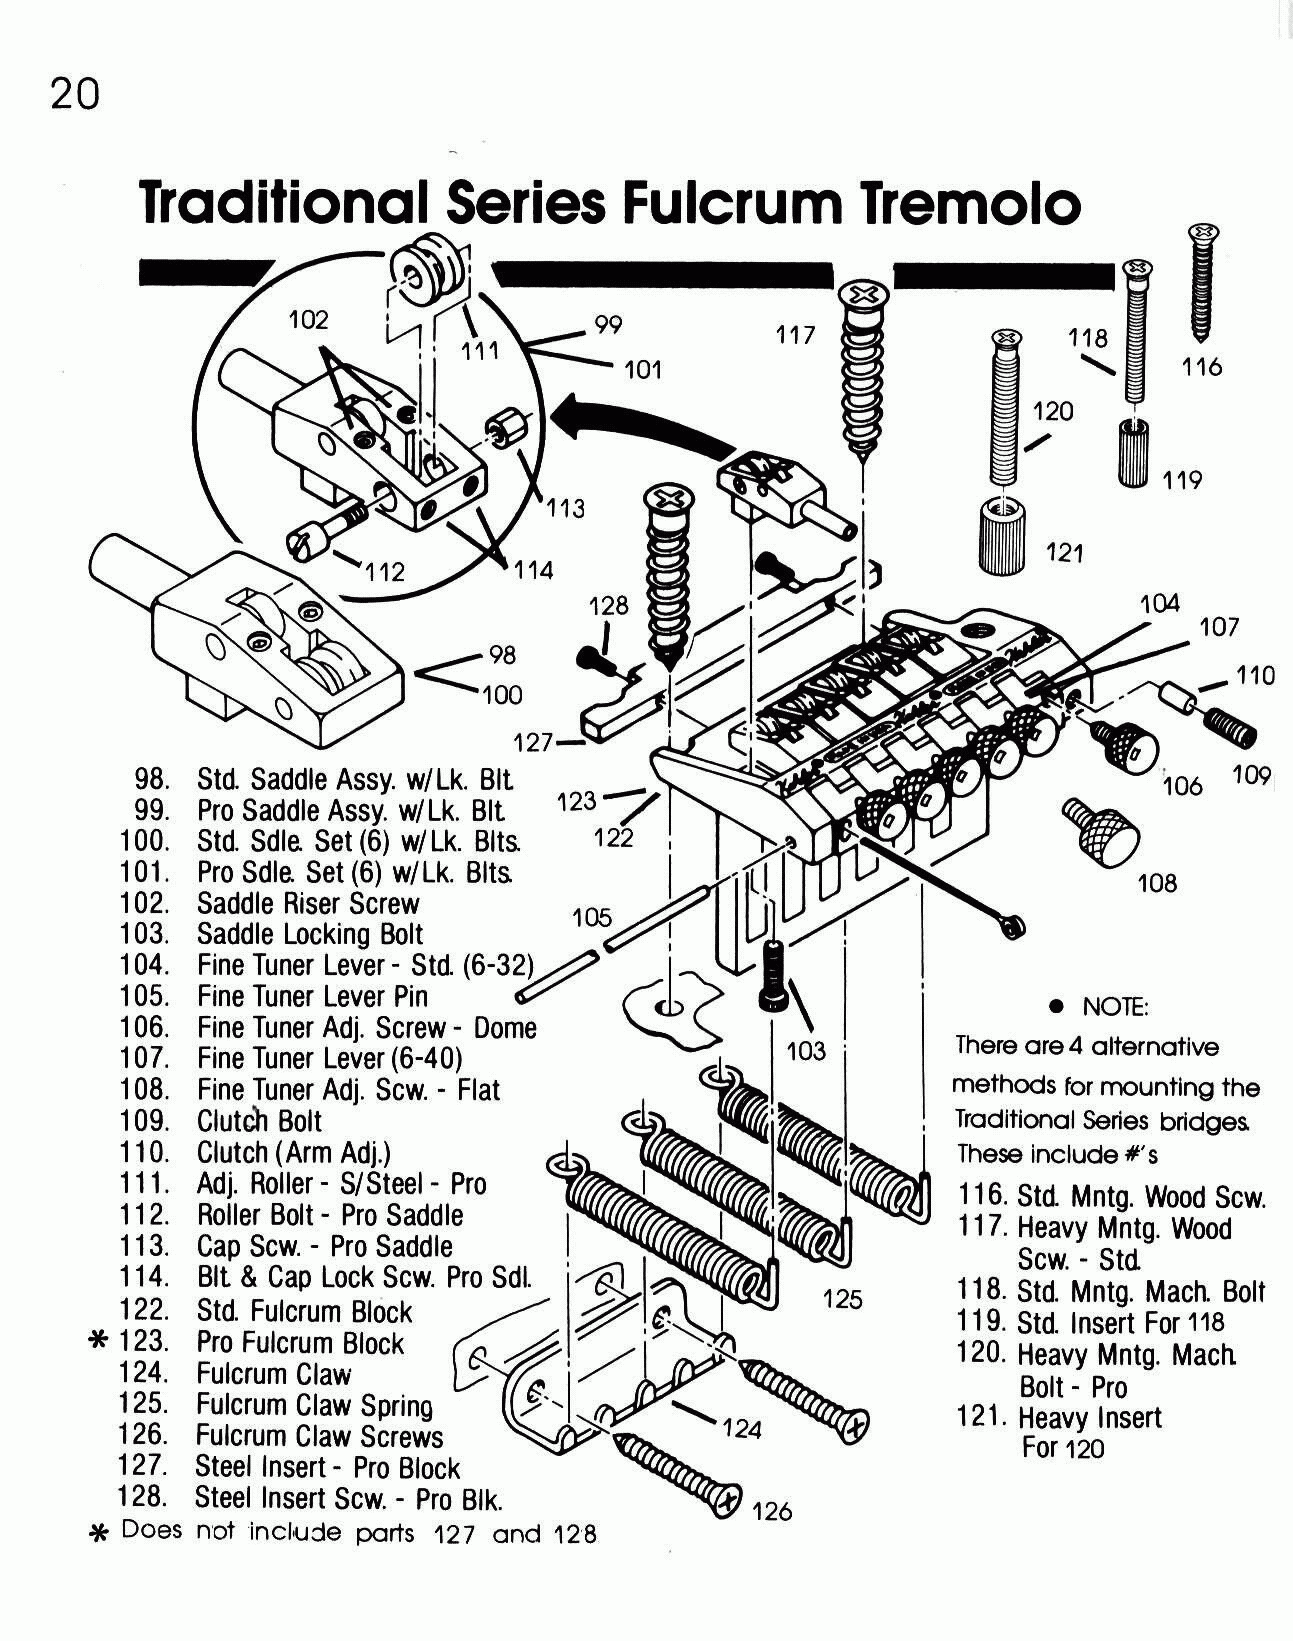 Kahler 2520 Traditional Fulcrum Tremolo